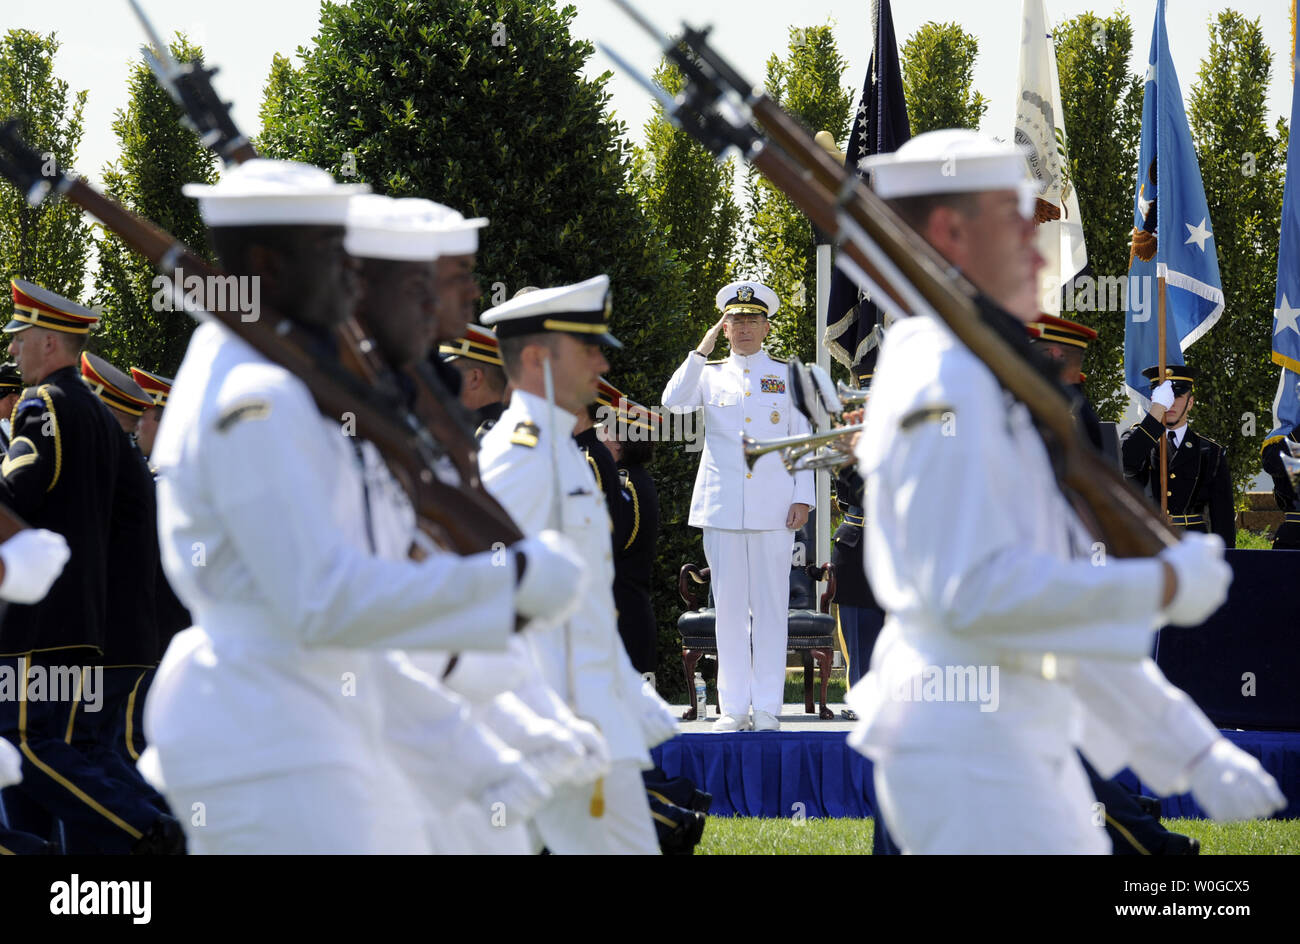 Chairman of the Joint Chiefs of Staff Adm. Michael Mullen participates in Secretary of Defense Robert Gates' Armed Forces Farewell Ceremony on the Pentagon River Parade Field in Arlington, Virginia, on June 30, 2011. Former CIA Director Leon E. Panetta will become the 23rd Secretary of Defense, replacing Gates on July 1.     UPI/Roger L. Wollenberg - Stock Image